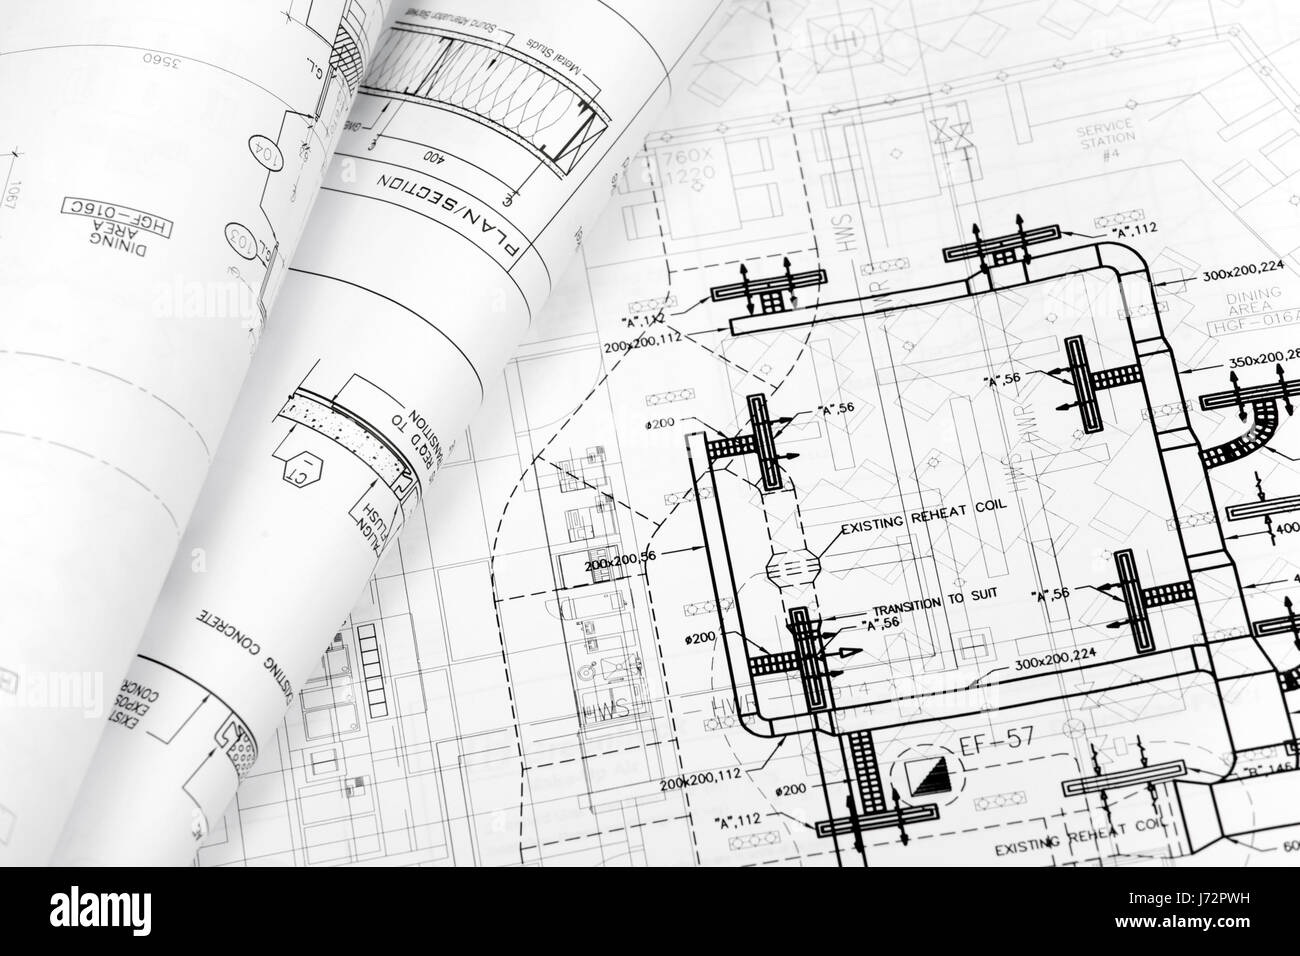 Architectural technical blueprint background engineering stock architectural technical blueprint background engineering construction malvernweather Gallery